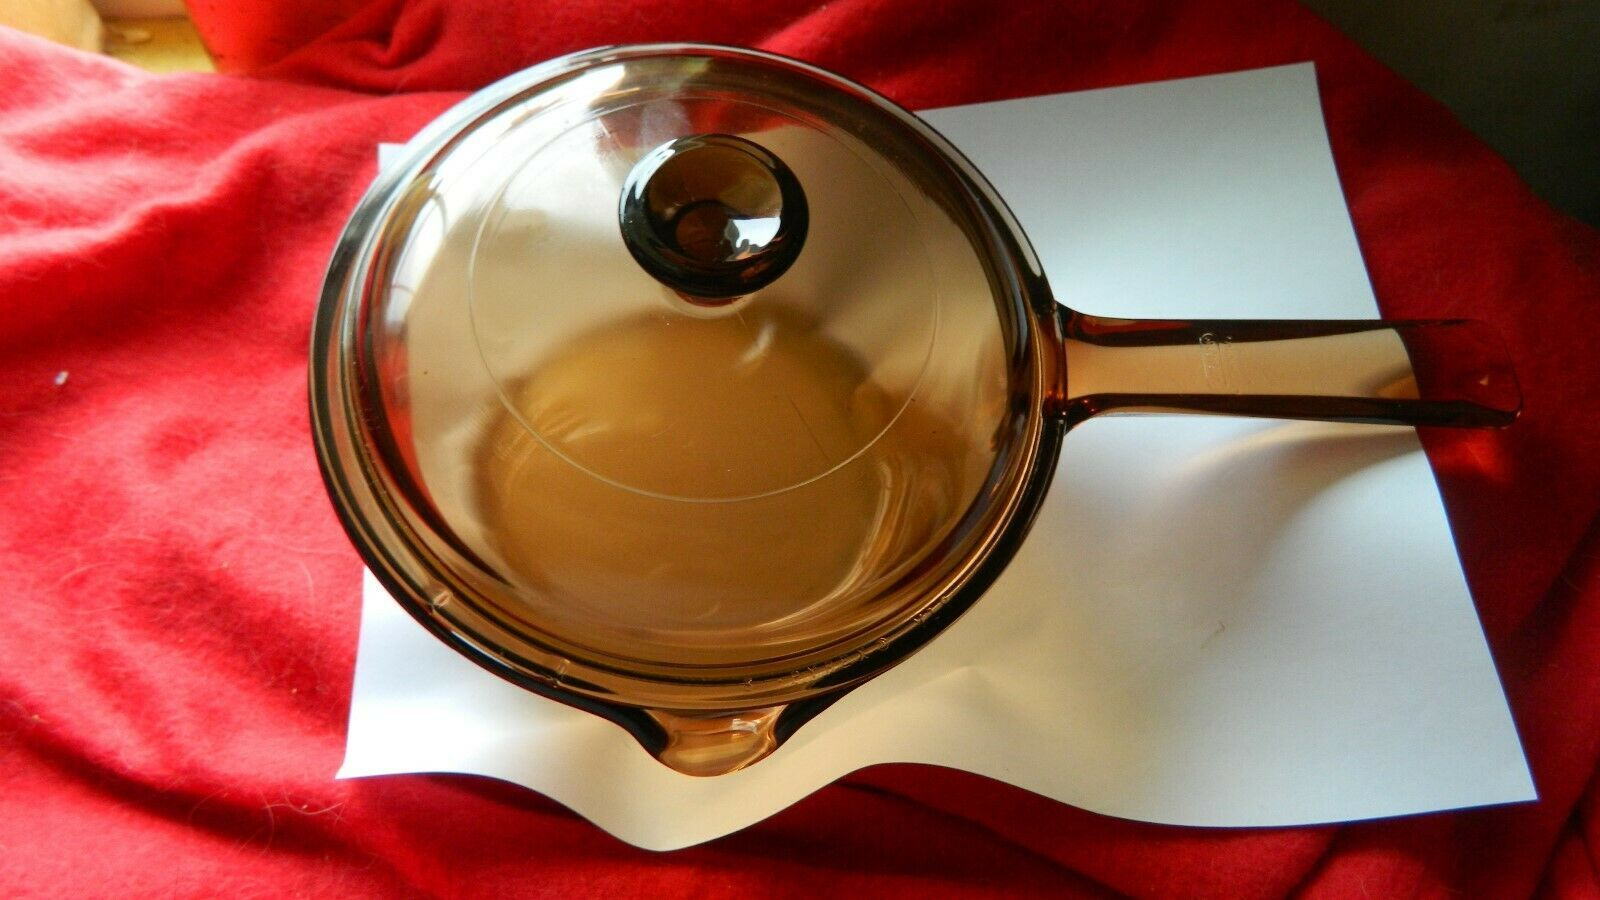 PYREX VISIONS AMBER USA MADE 1 LITER POUR SPOUT SAUCEPAN WITH LID FREE USA SHIP - $37.39